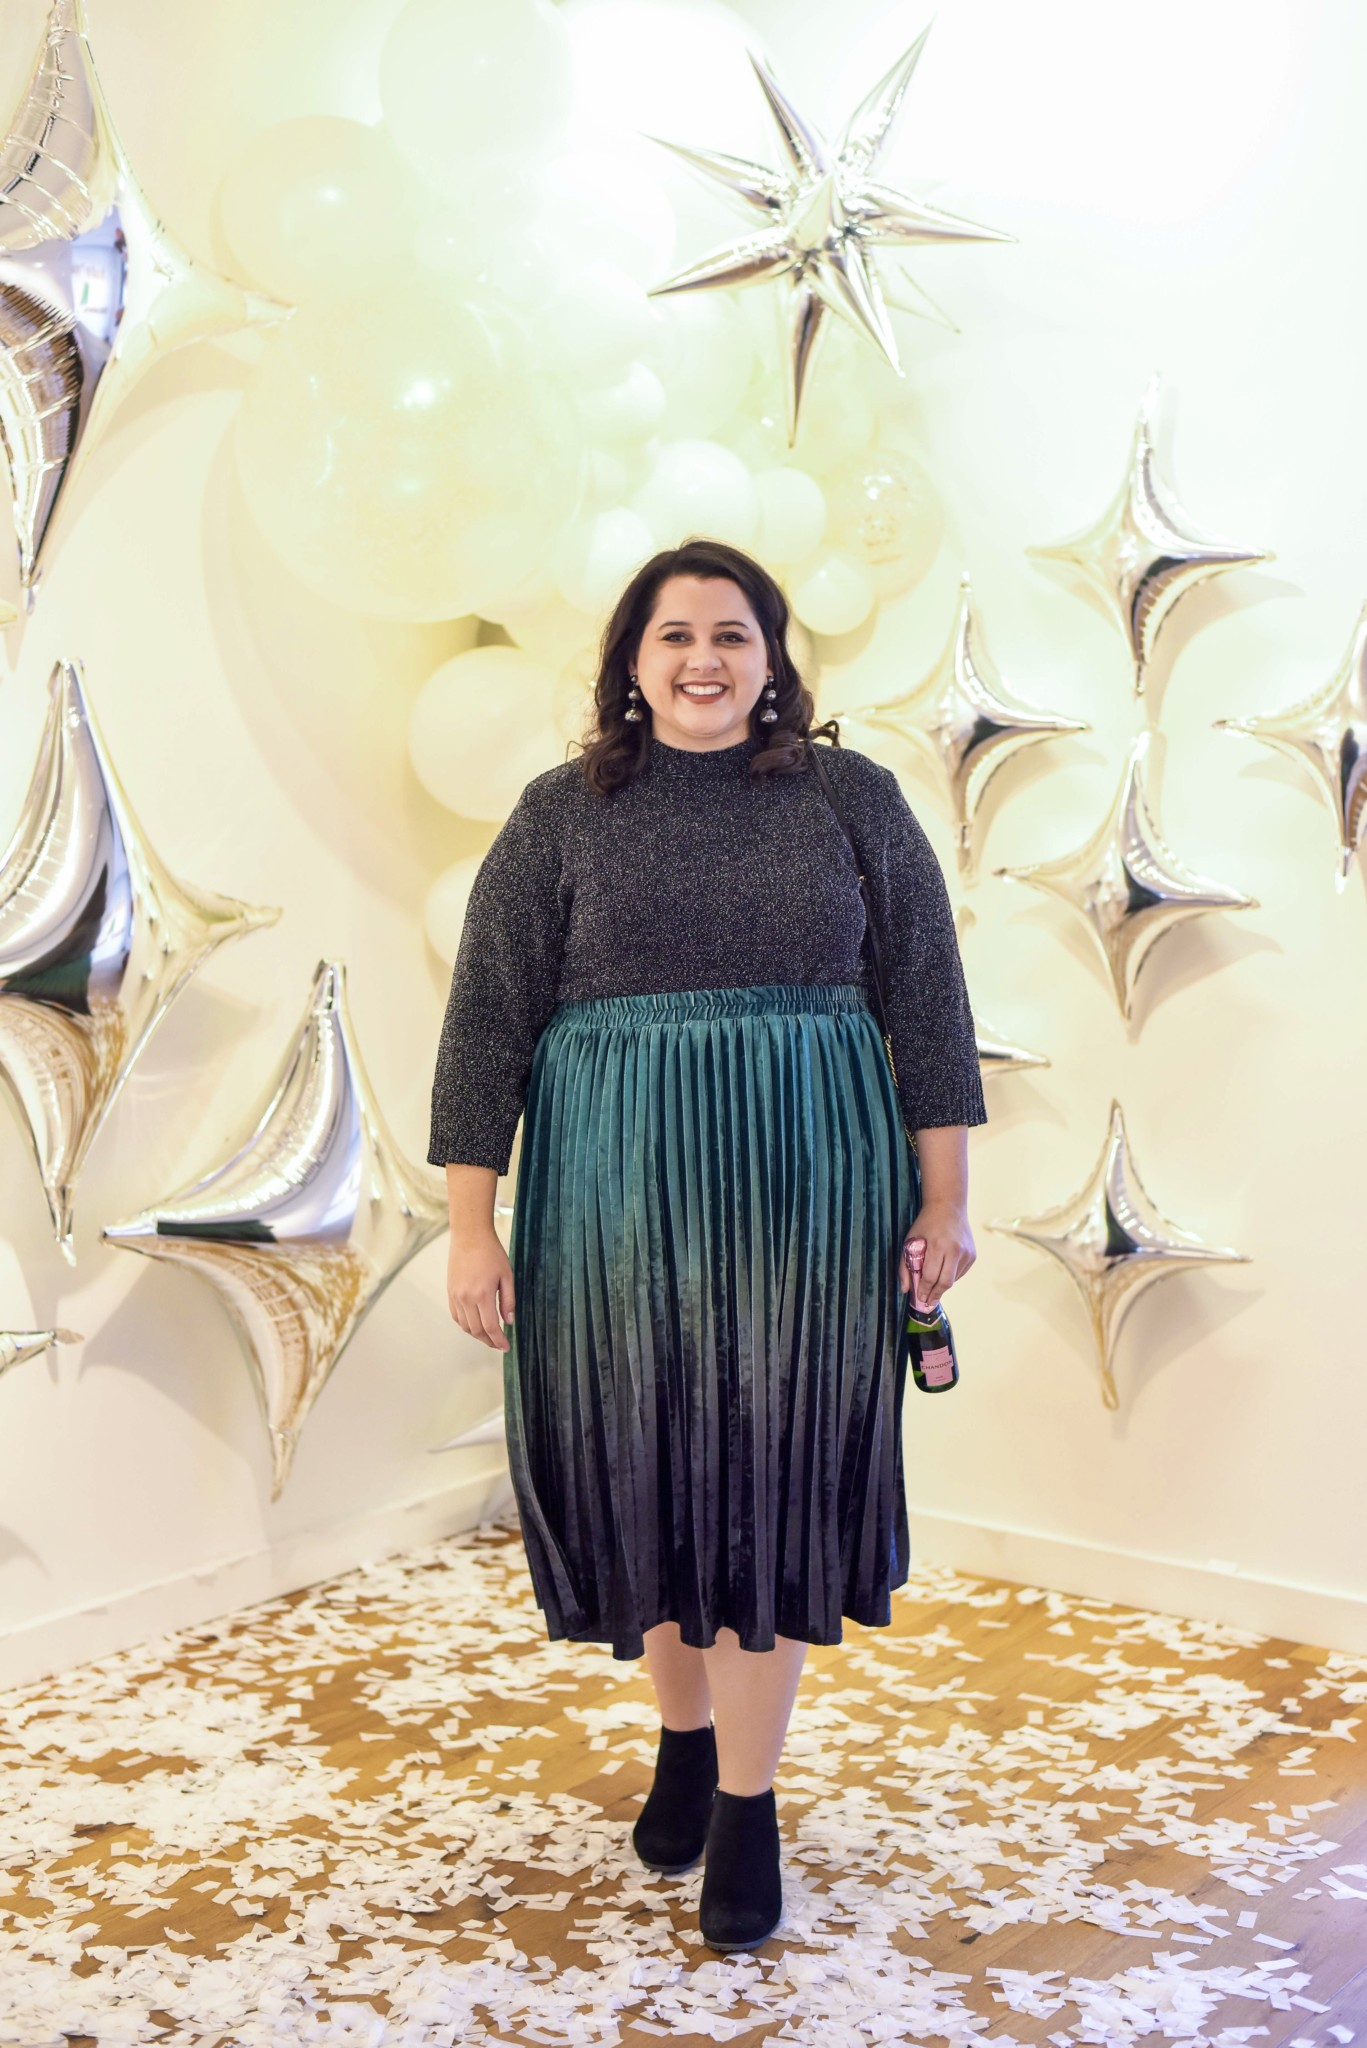 A plus size New Year's Eve outfit that is perfect for a night on the town or a more casual ringing in of the New Year's at a friend's house